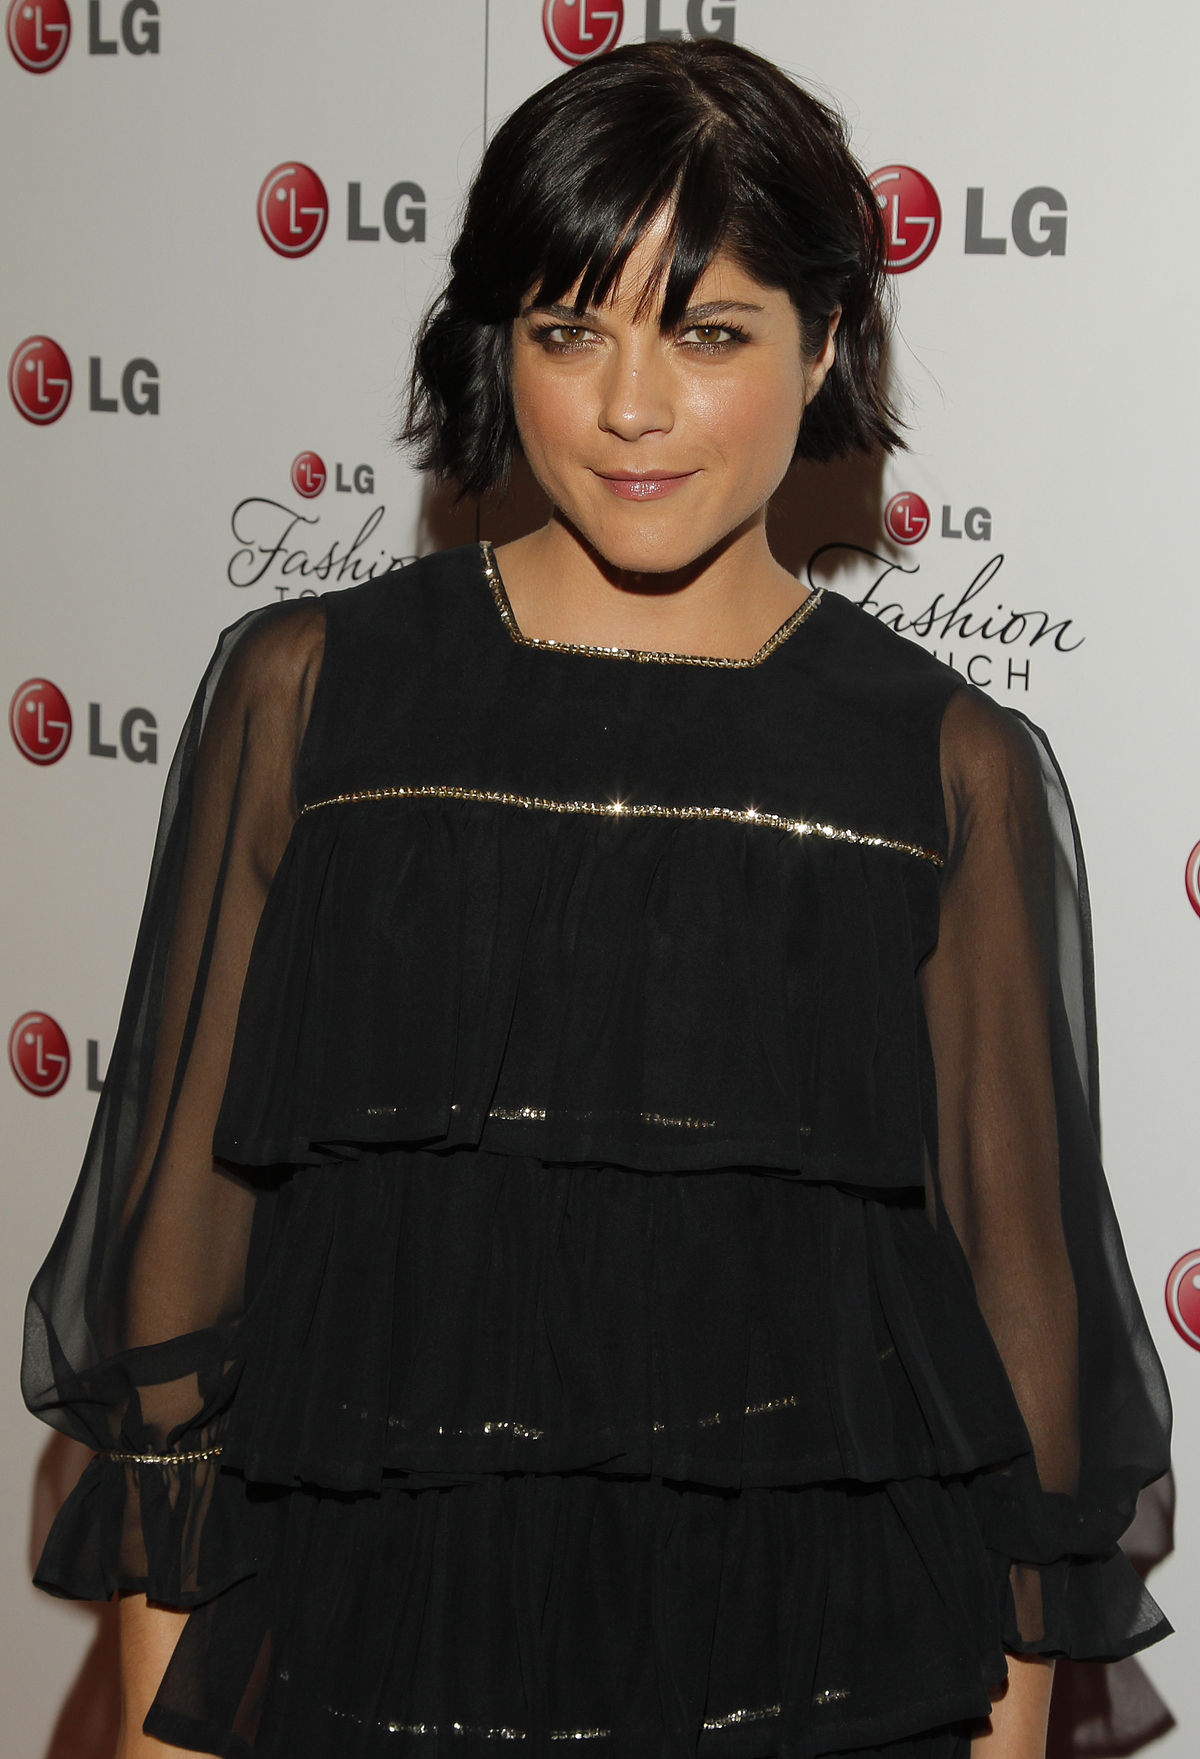 Selma Blair - Wikipedia